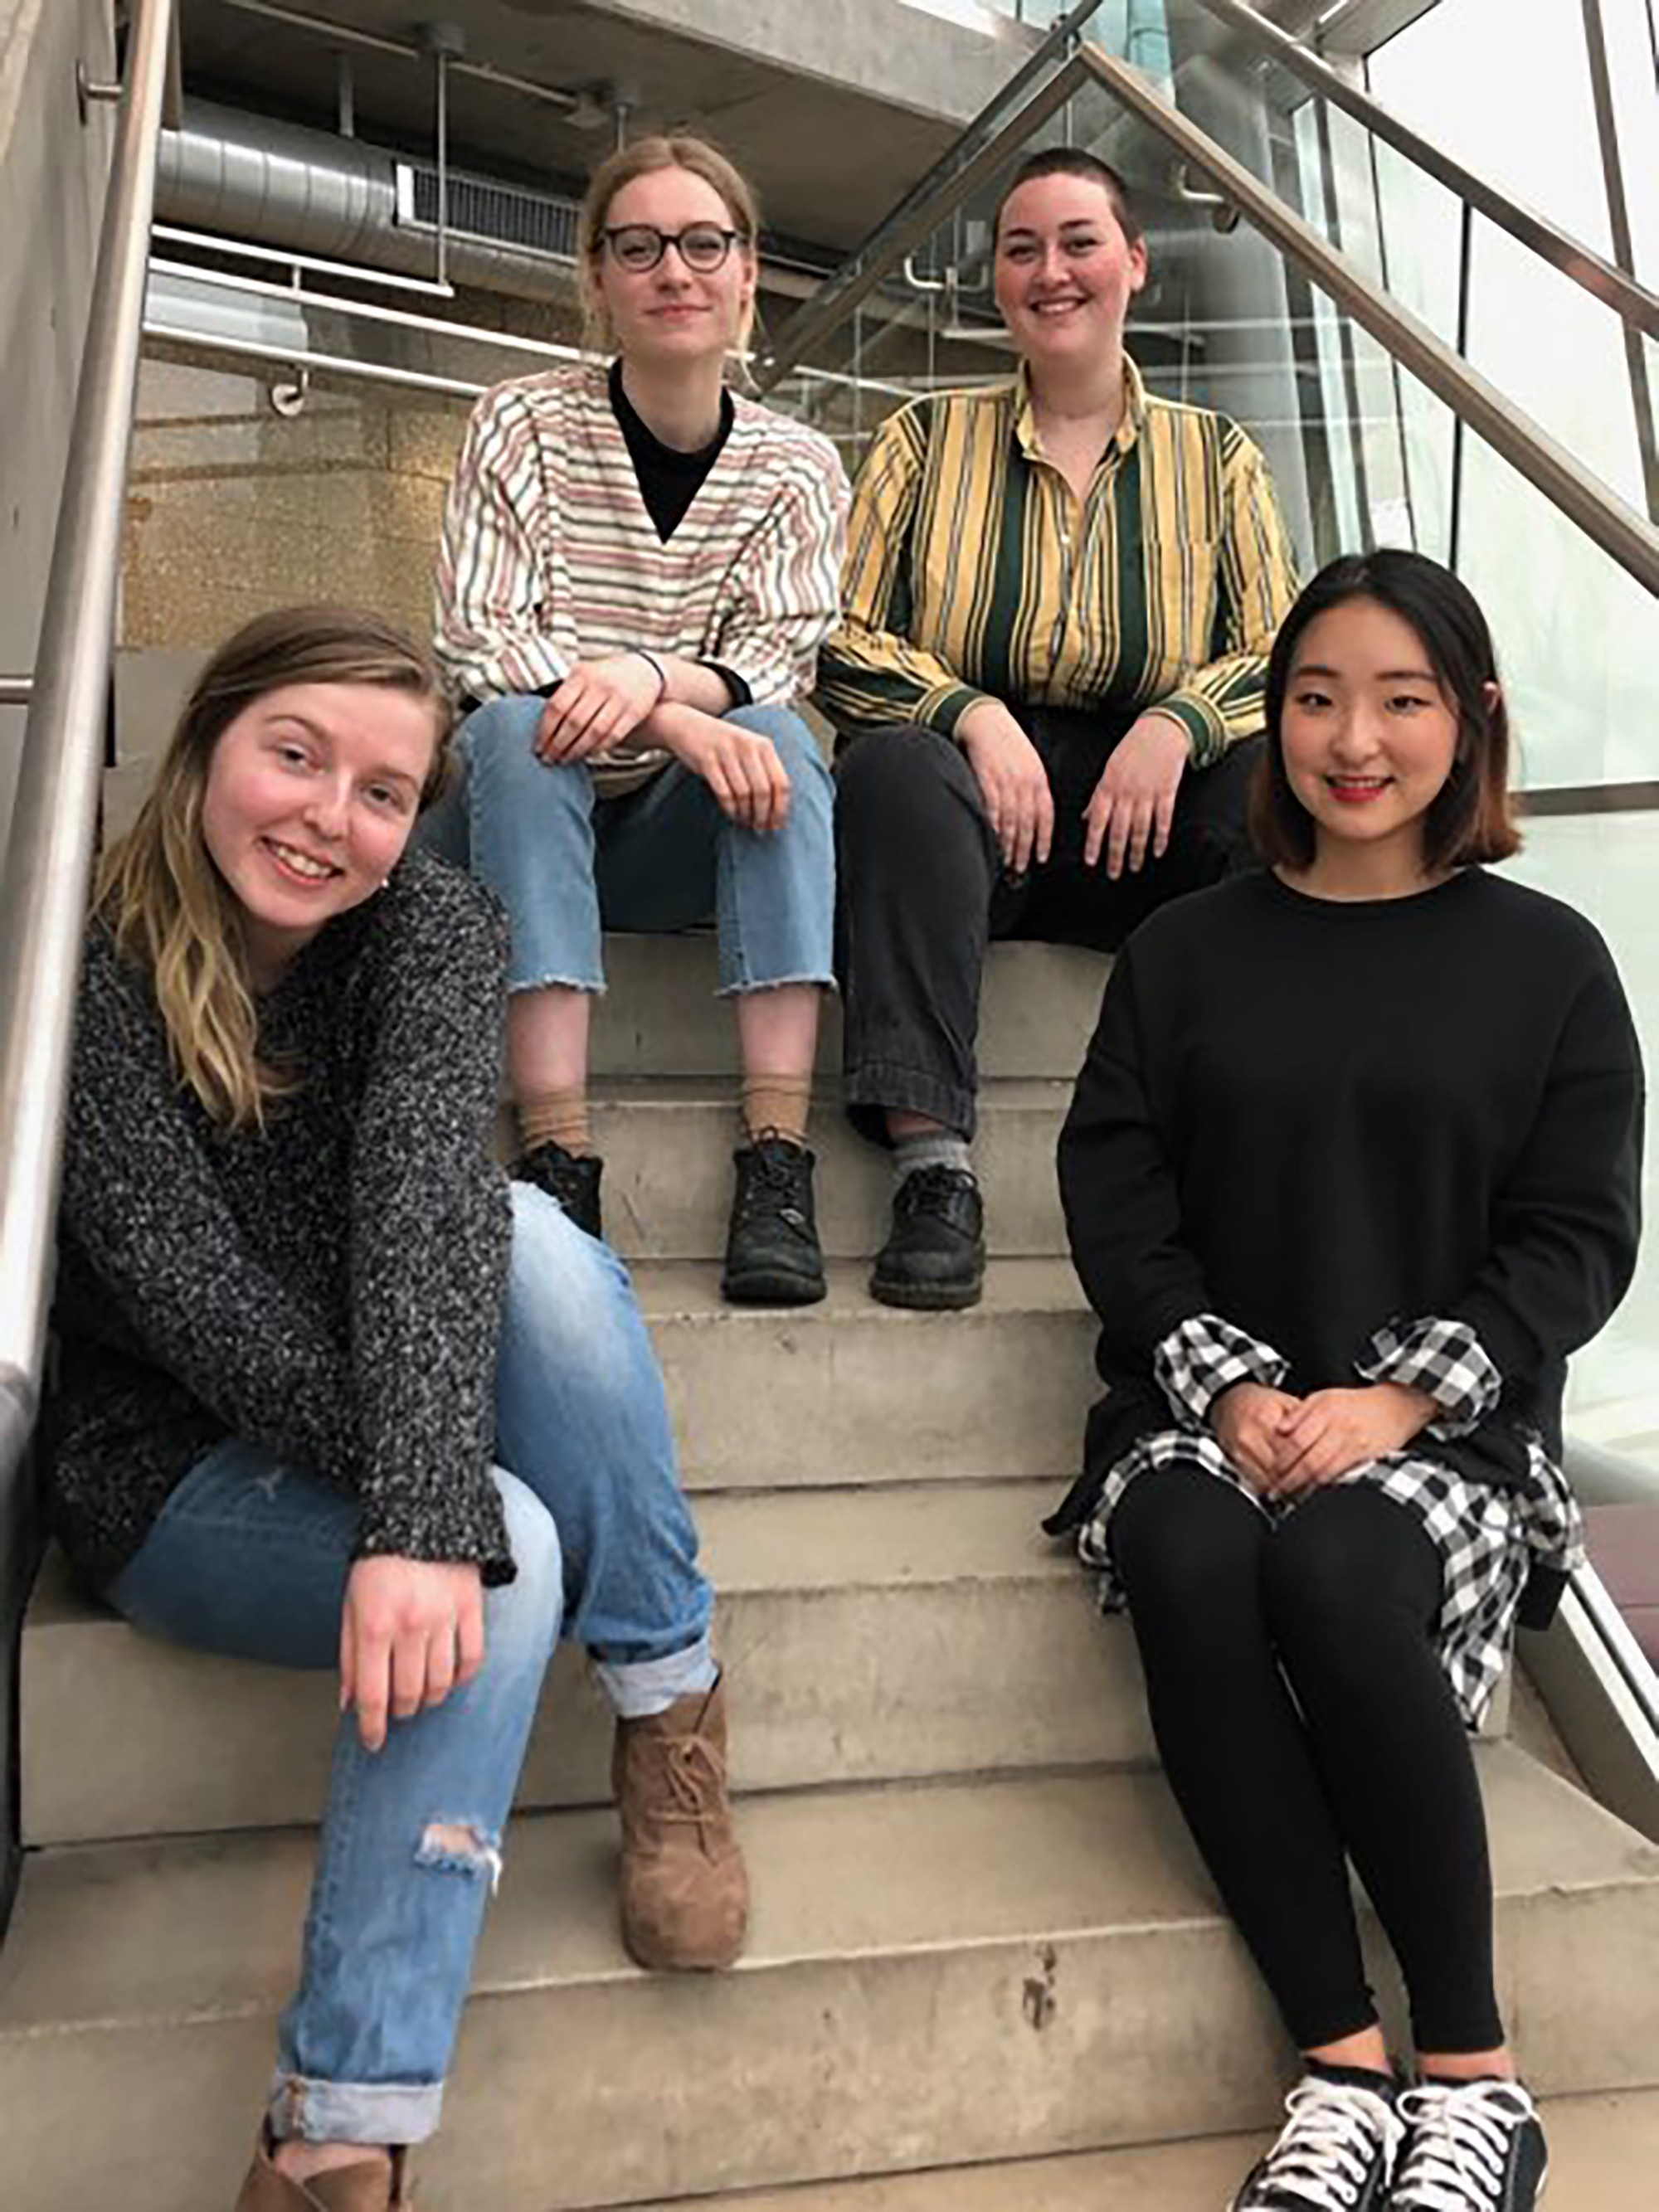 Four college students sitting on stairs and smiling